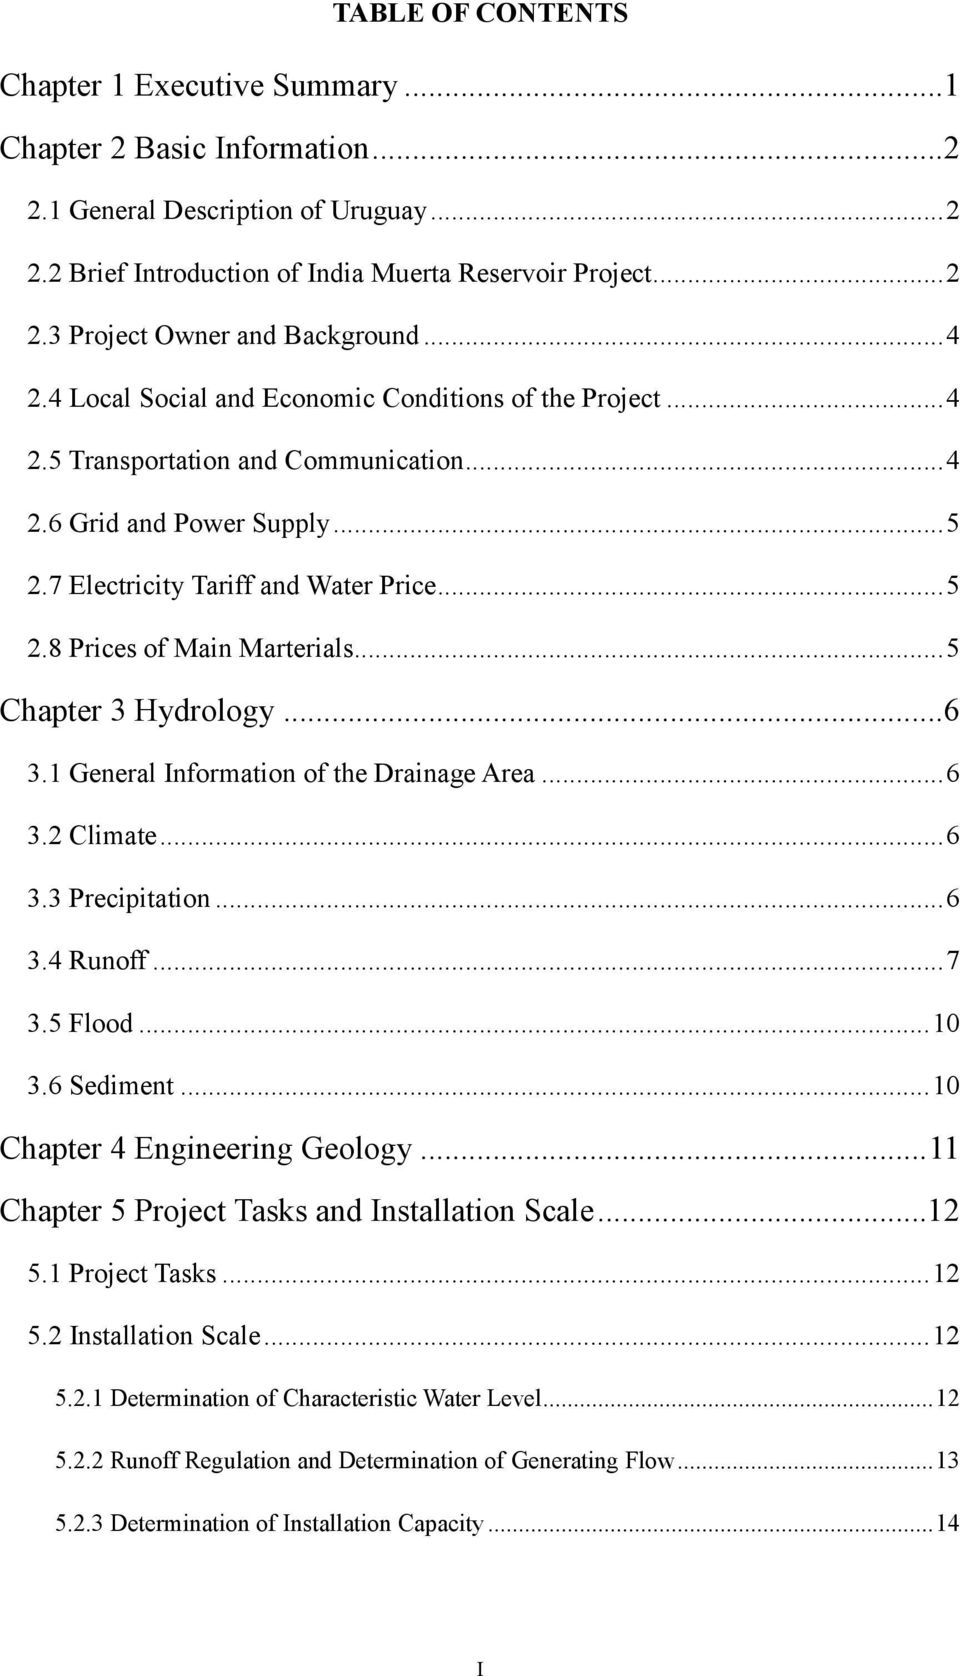 .. 5 Chapter 3 Hydrology... 6 3.1 General Information of the Drainage Area... 6 3.2 Climate... 6 3.3 Precipitation... 6 3.4 Runoff... 7 3.5 Flood... 10 3.6 Sediment... 10 Chapter 4 Engineering Geology.